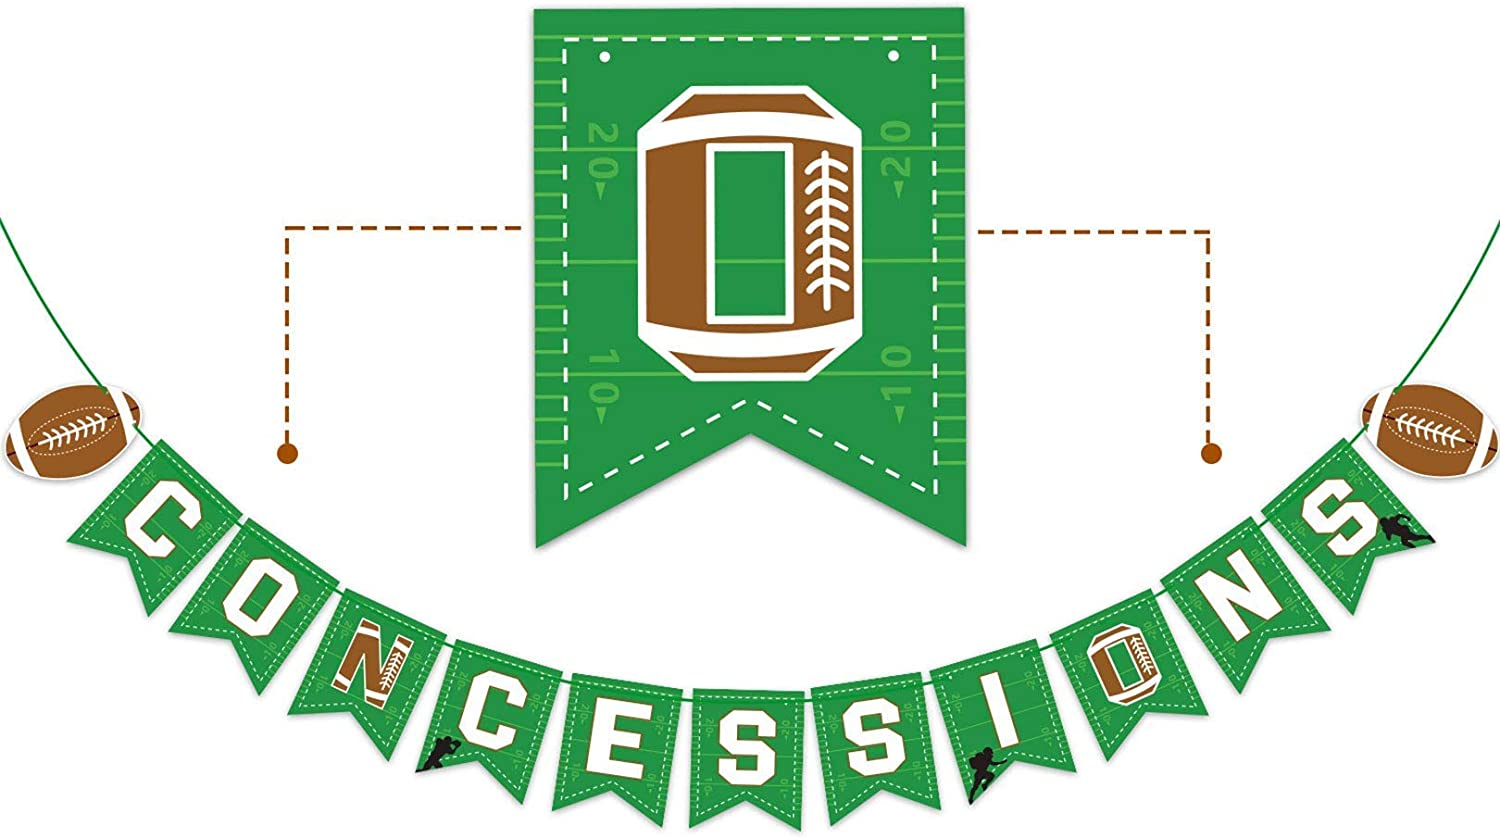 Football Party Banner|Concessions Garland|Football Themed Birthday Baby Shower Party Bunting Sign Decoration|Sports Game Day SUPER BOWL Sunday Photo Backdrop|Pre-strung